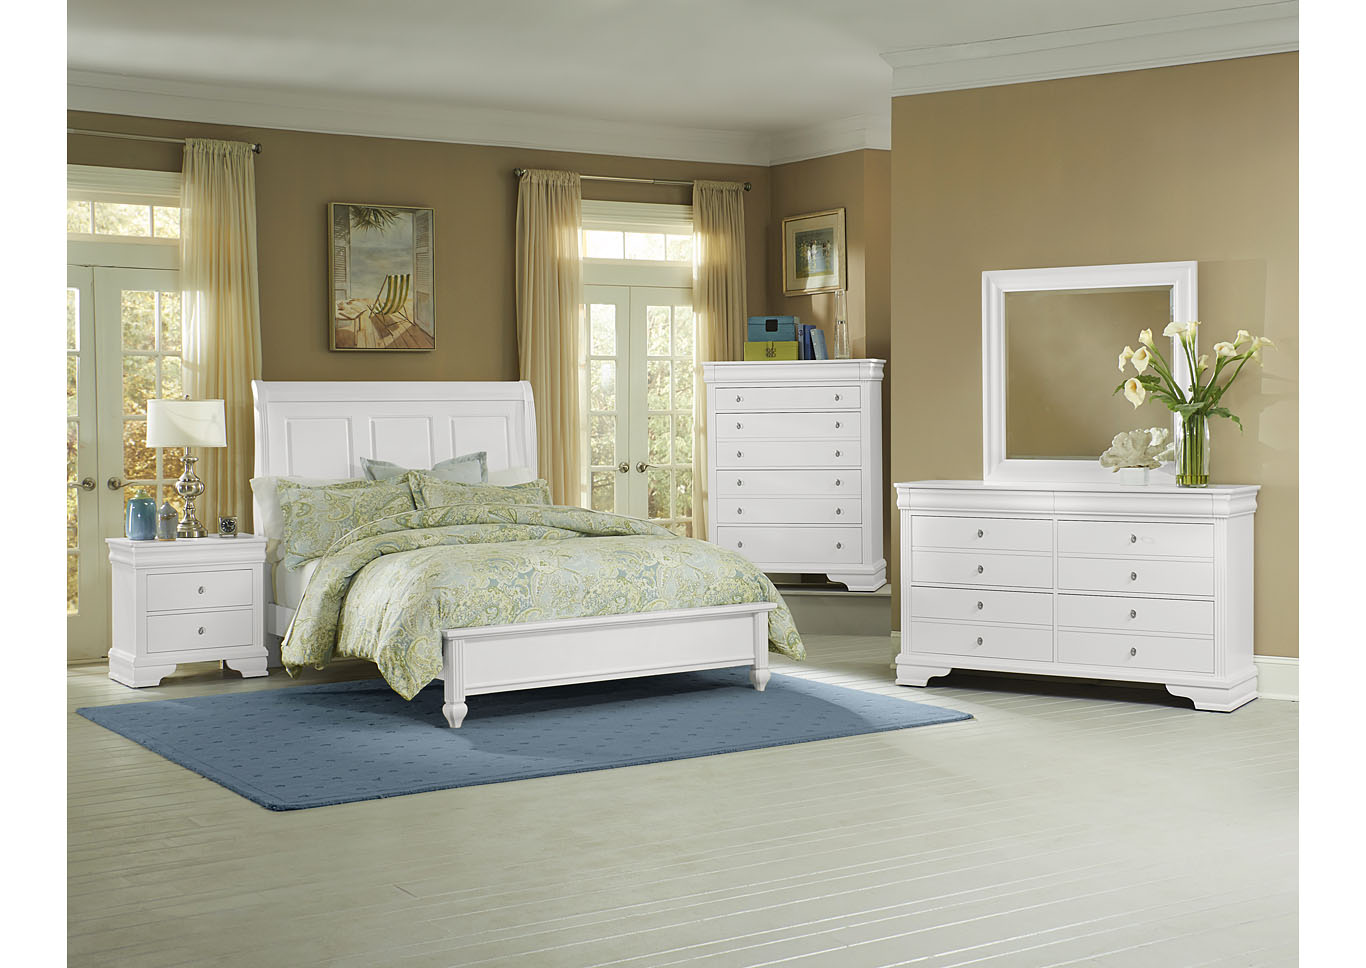 French Market Soft White King Sleigh Bed w/ Dresser, Mirror and Nightstand,Vaughan-Bassett